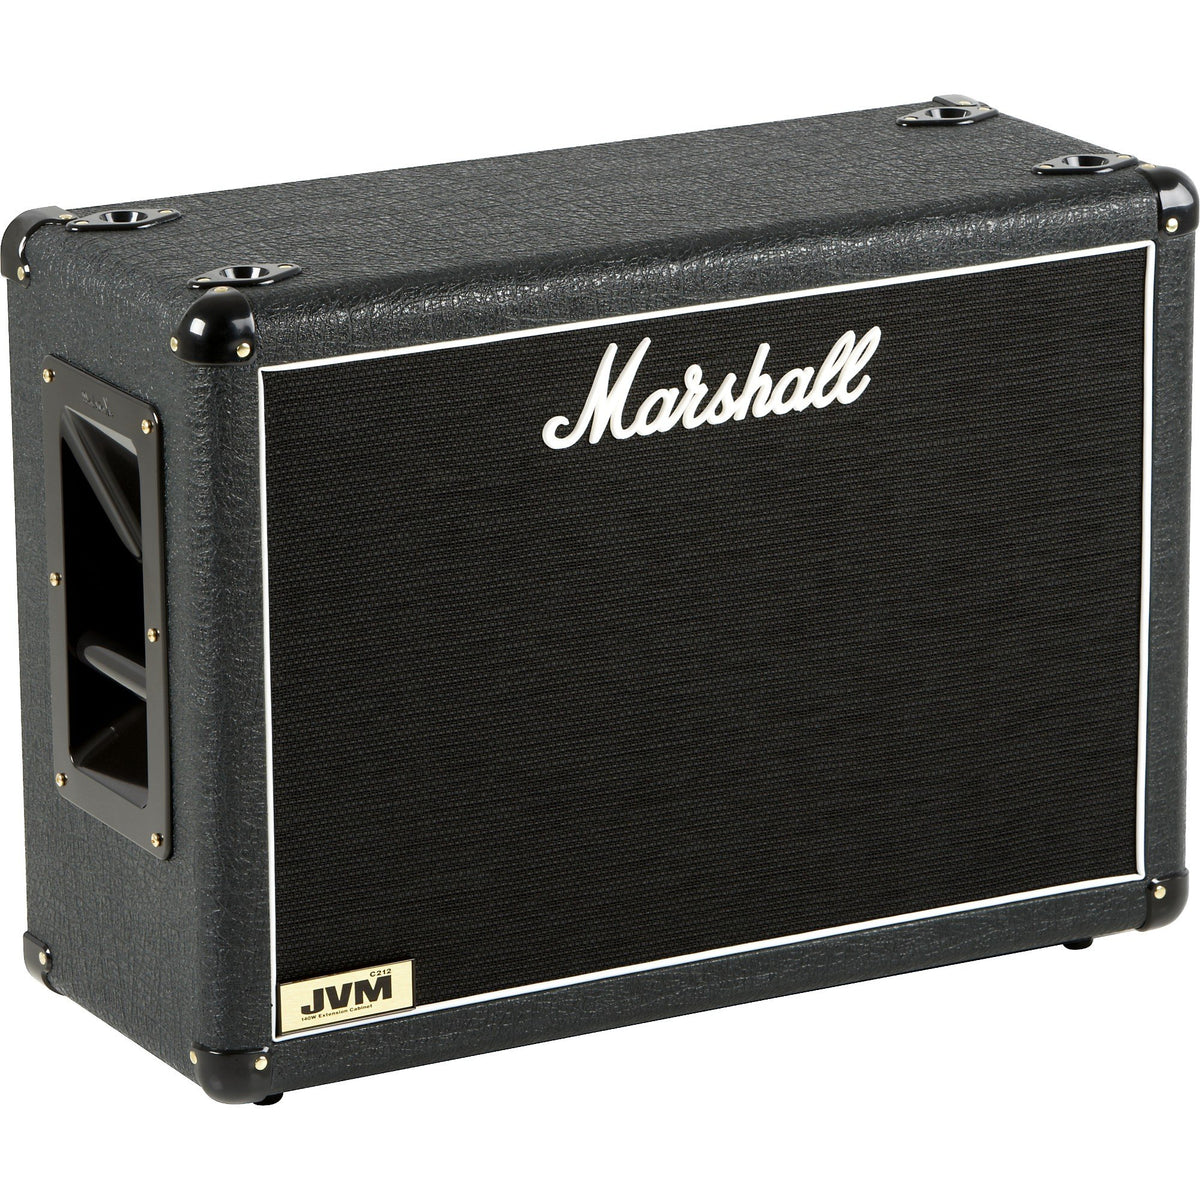 Marshall JVMC212 2x12 Guitar Extension Cab Black